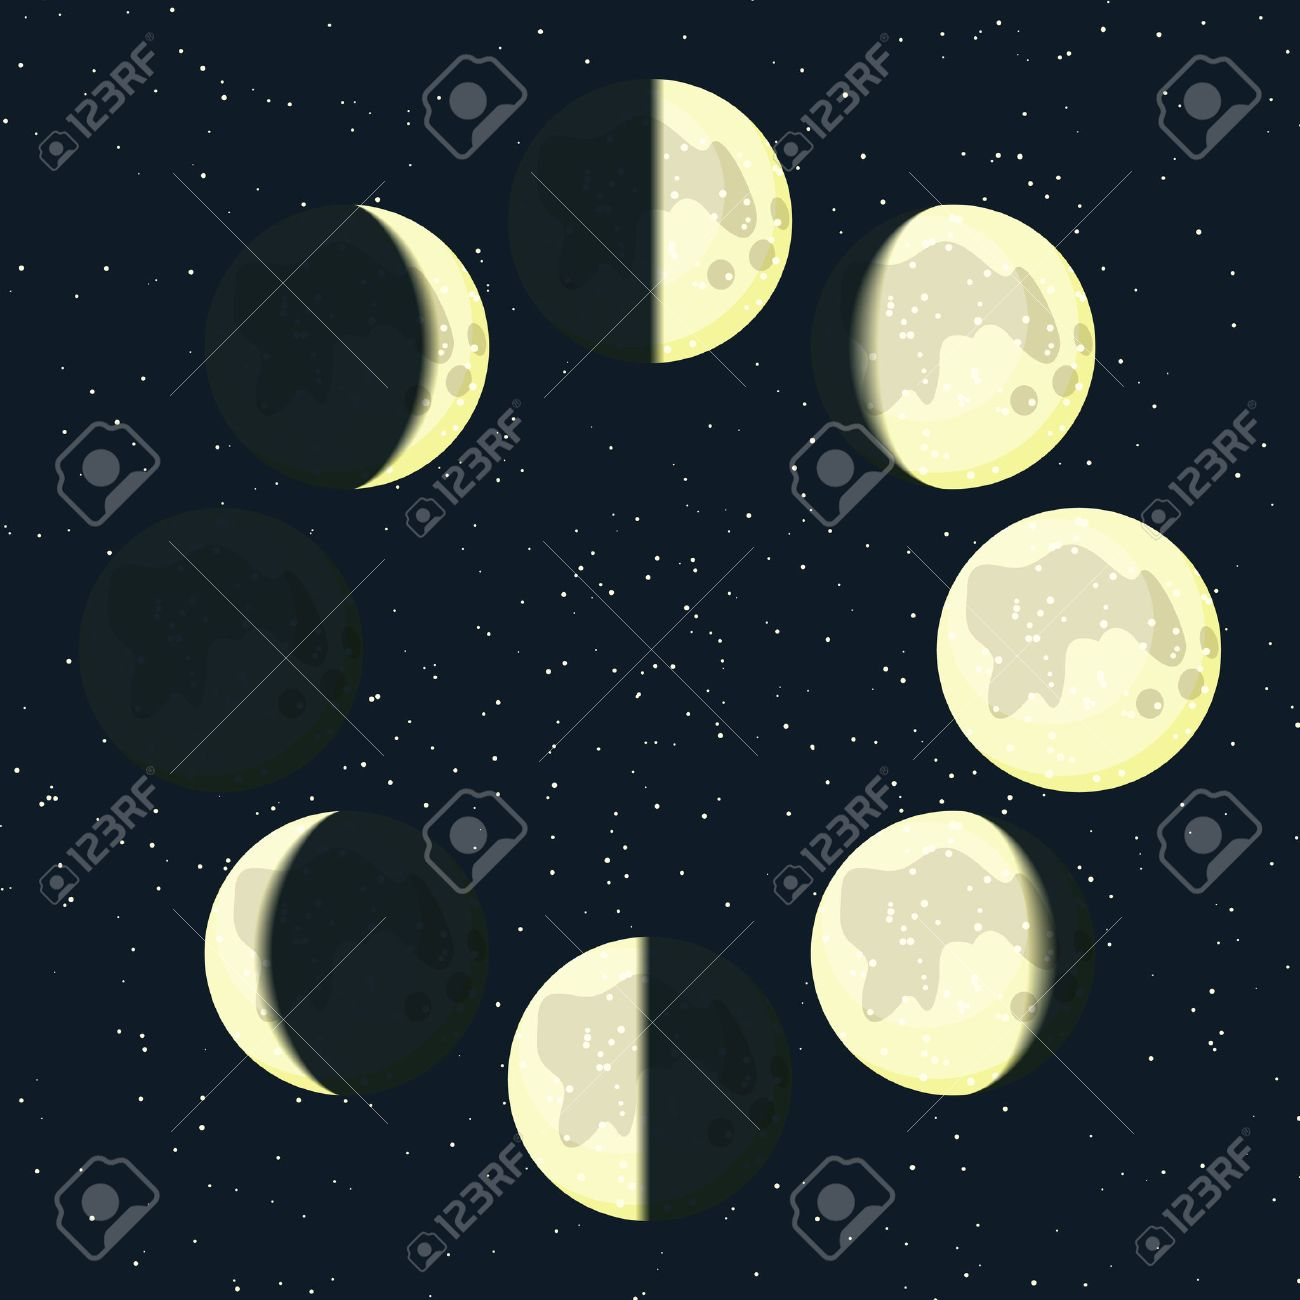 Yellow Moon Phases Vector Icons On Beautiful Starry Dark Background